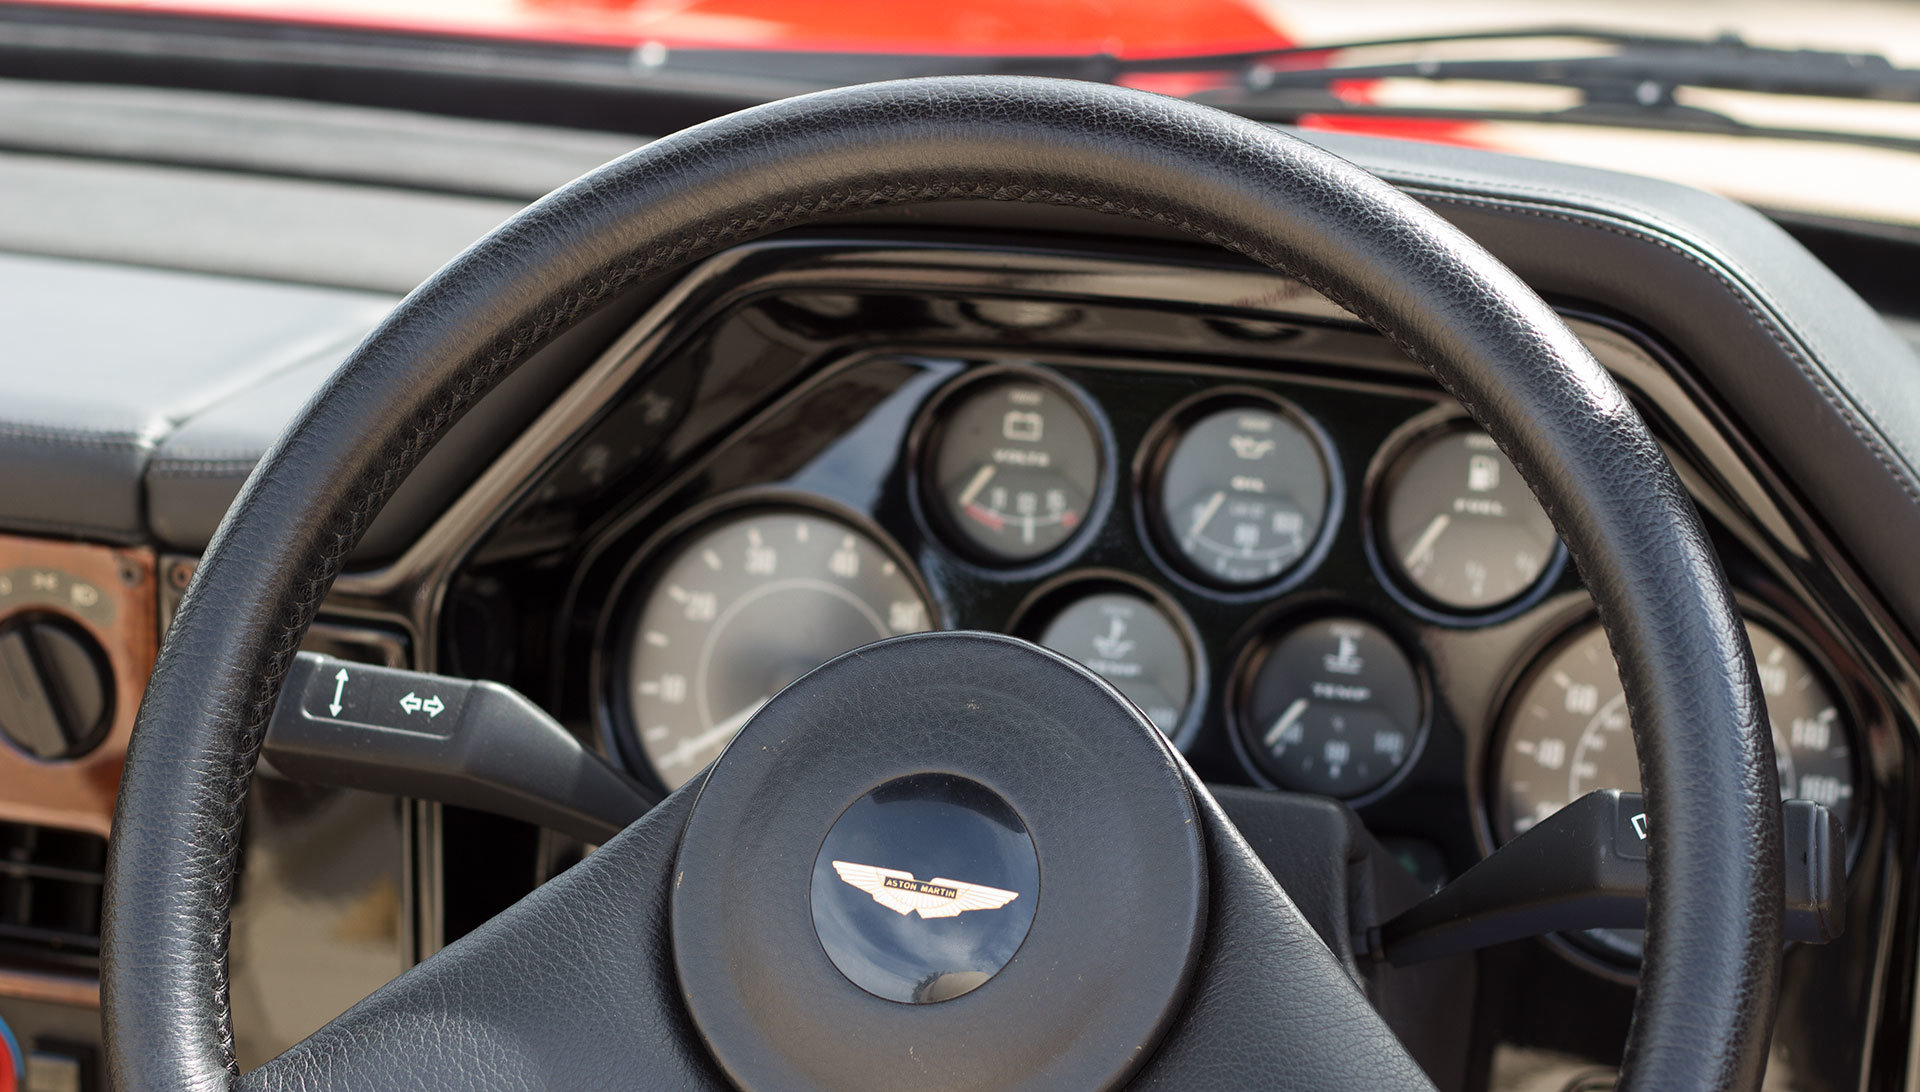 1989 Aston Martin V8 Vantage Volante Zagato - Unregistered For Sale (picture 17 of 24)